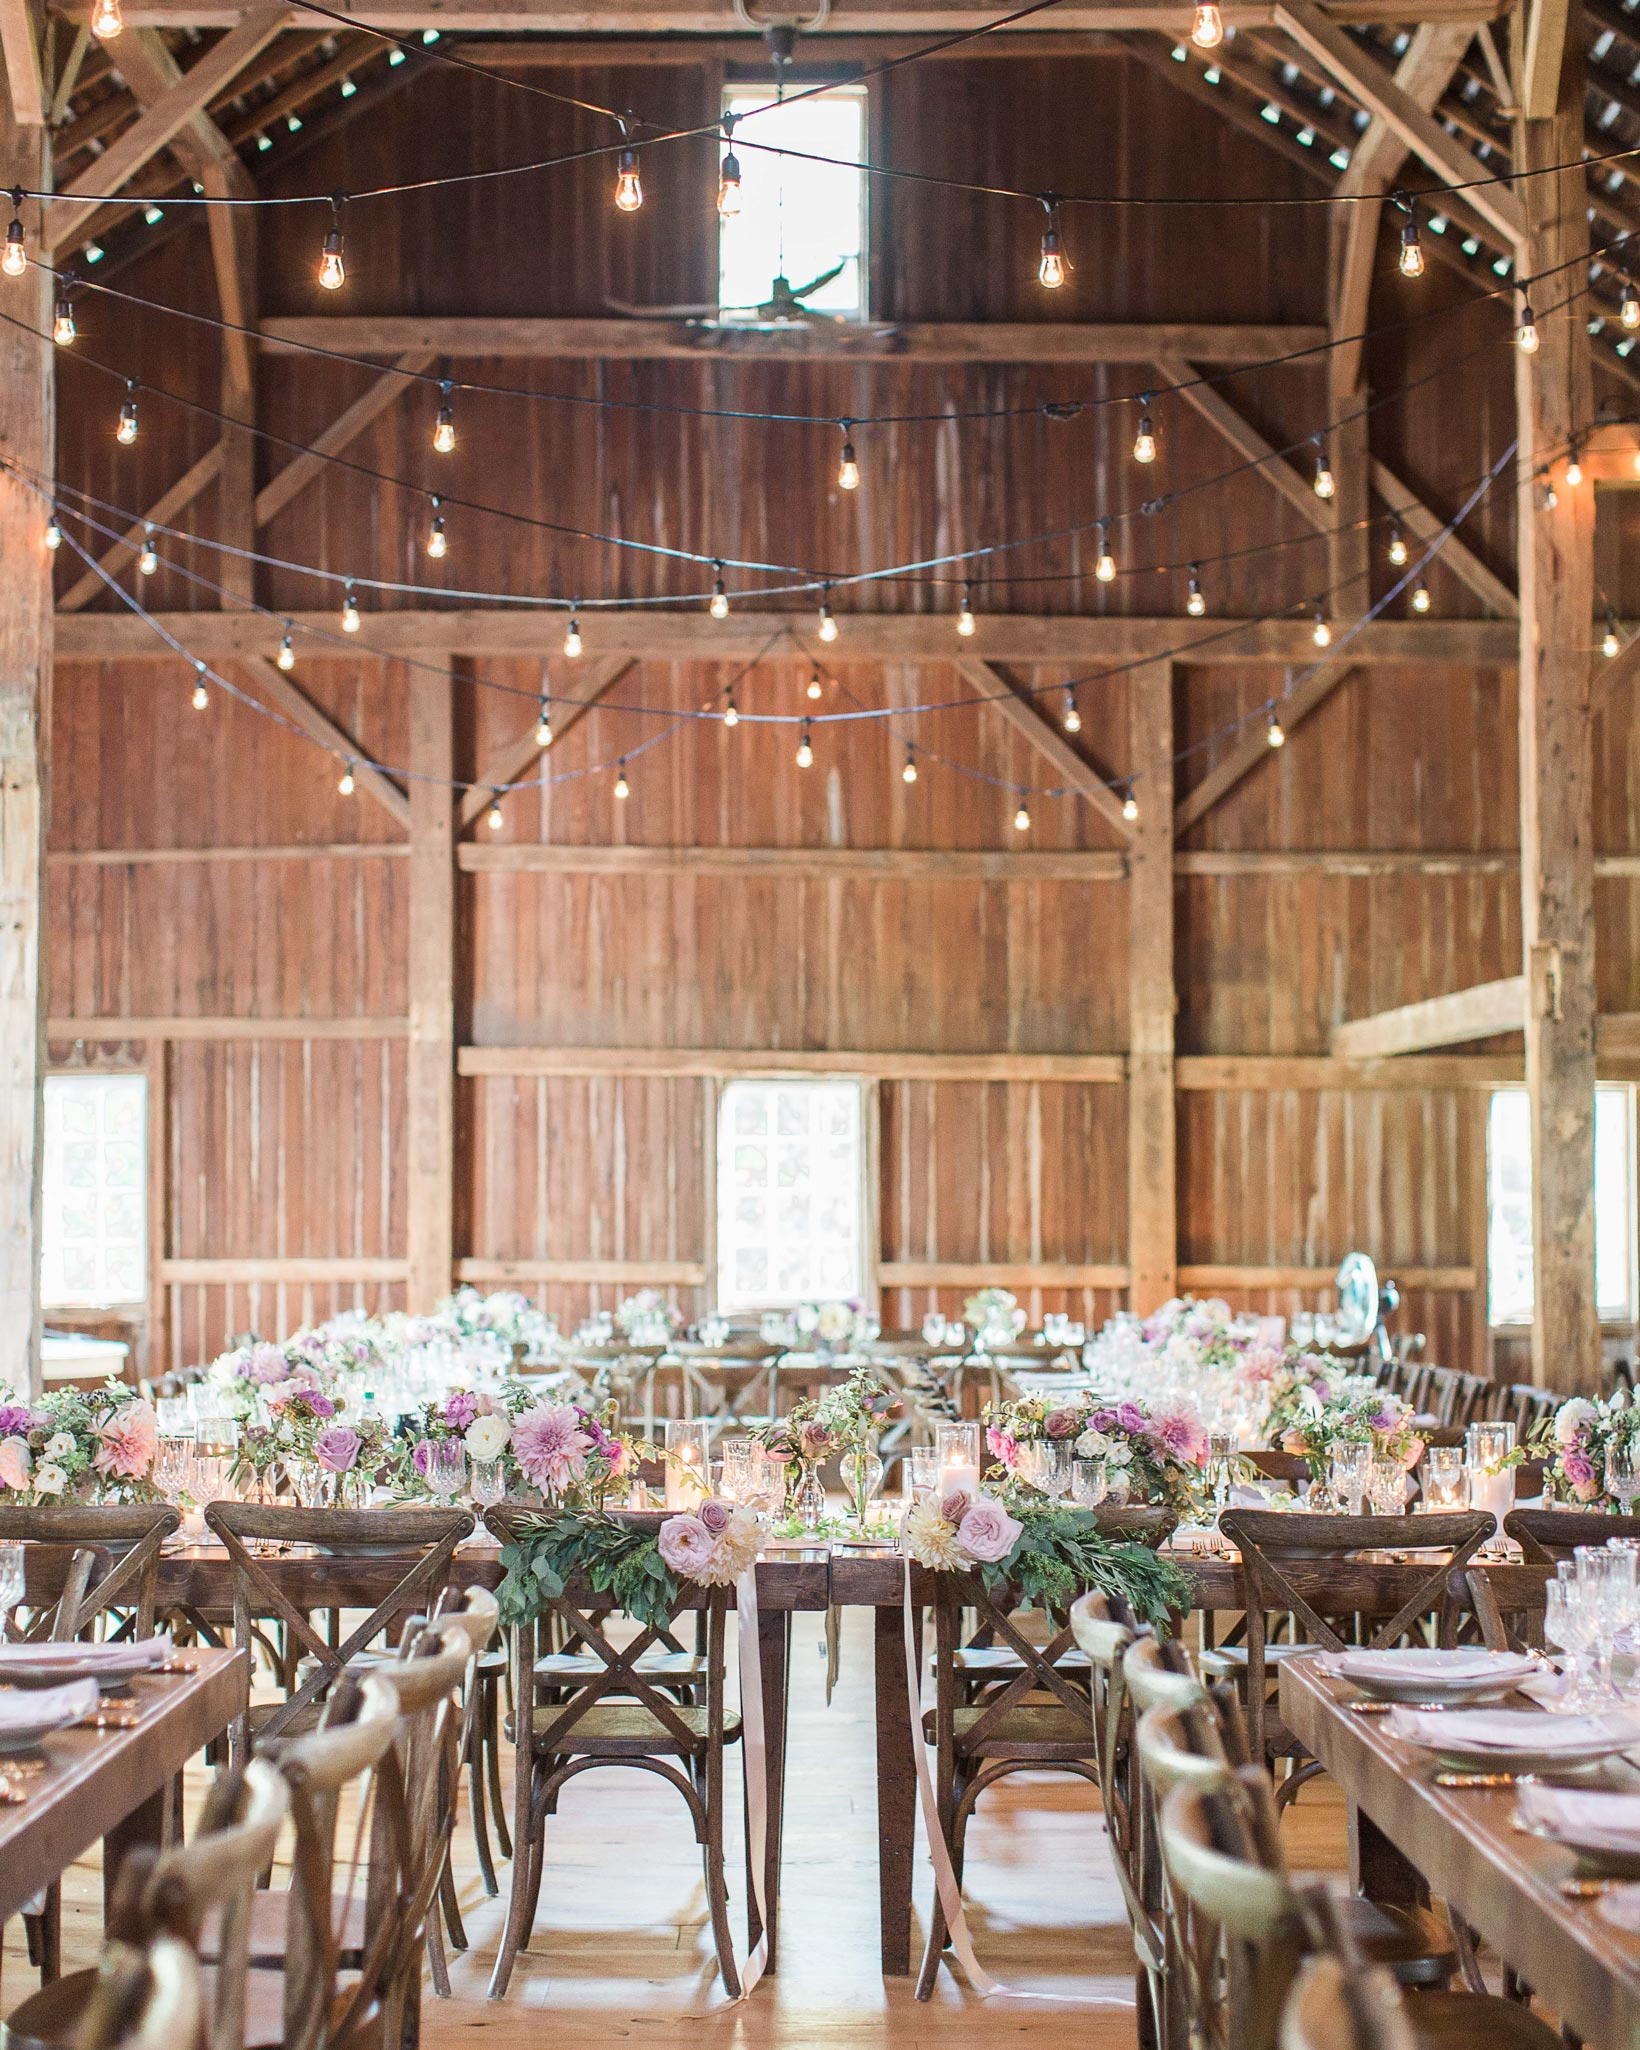 Wedding Website Url Ideas: 10 Things To Consider Before Planning A Barn Wedding